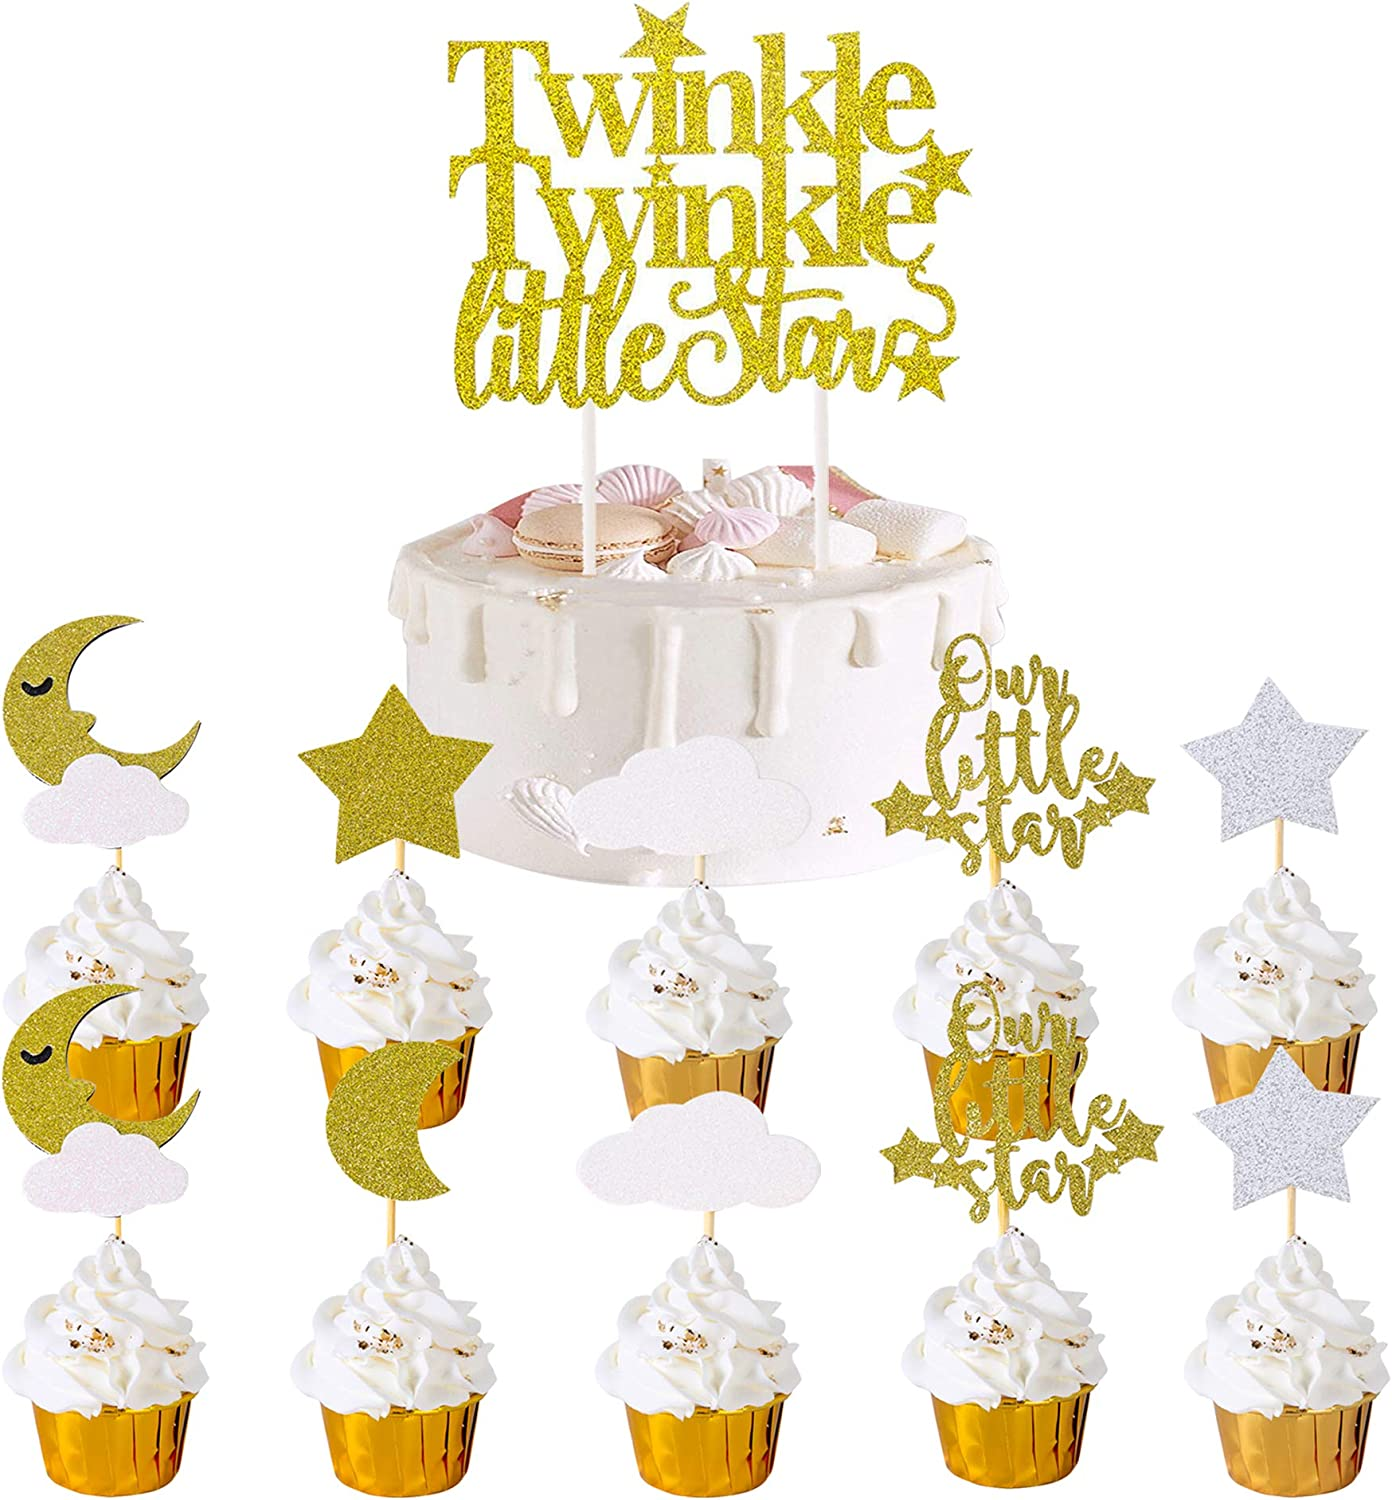 Twinkle Twinkle Little Star Cupcake and Cake Toppers (set of 25),Glitter Decoration Baby Shower Moon Food Picks Sticks Wedding Birthday Party Favors Little Star Cupcake Toppers Star Theme Gender Reveal Supplies